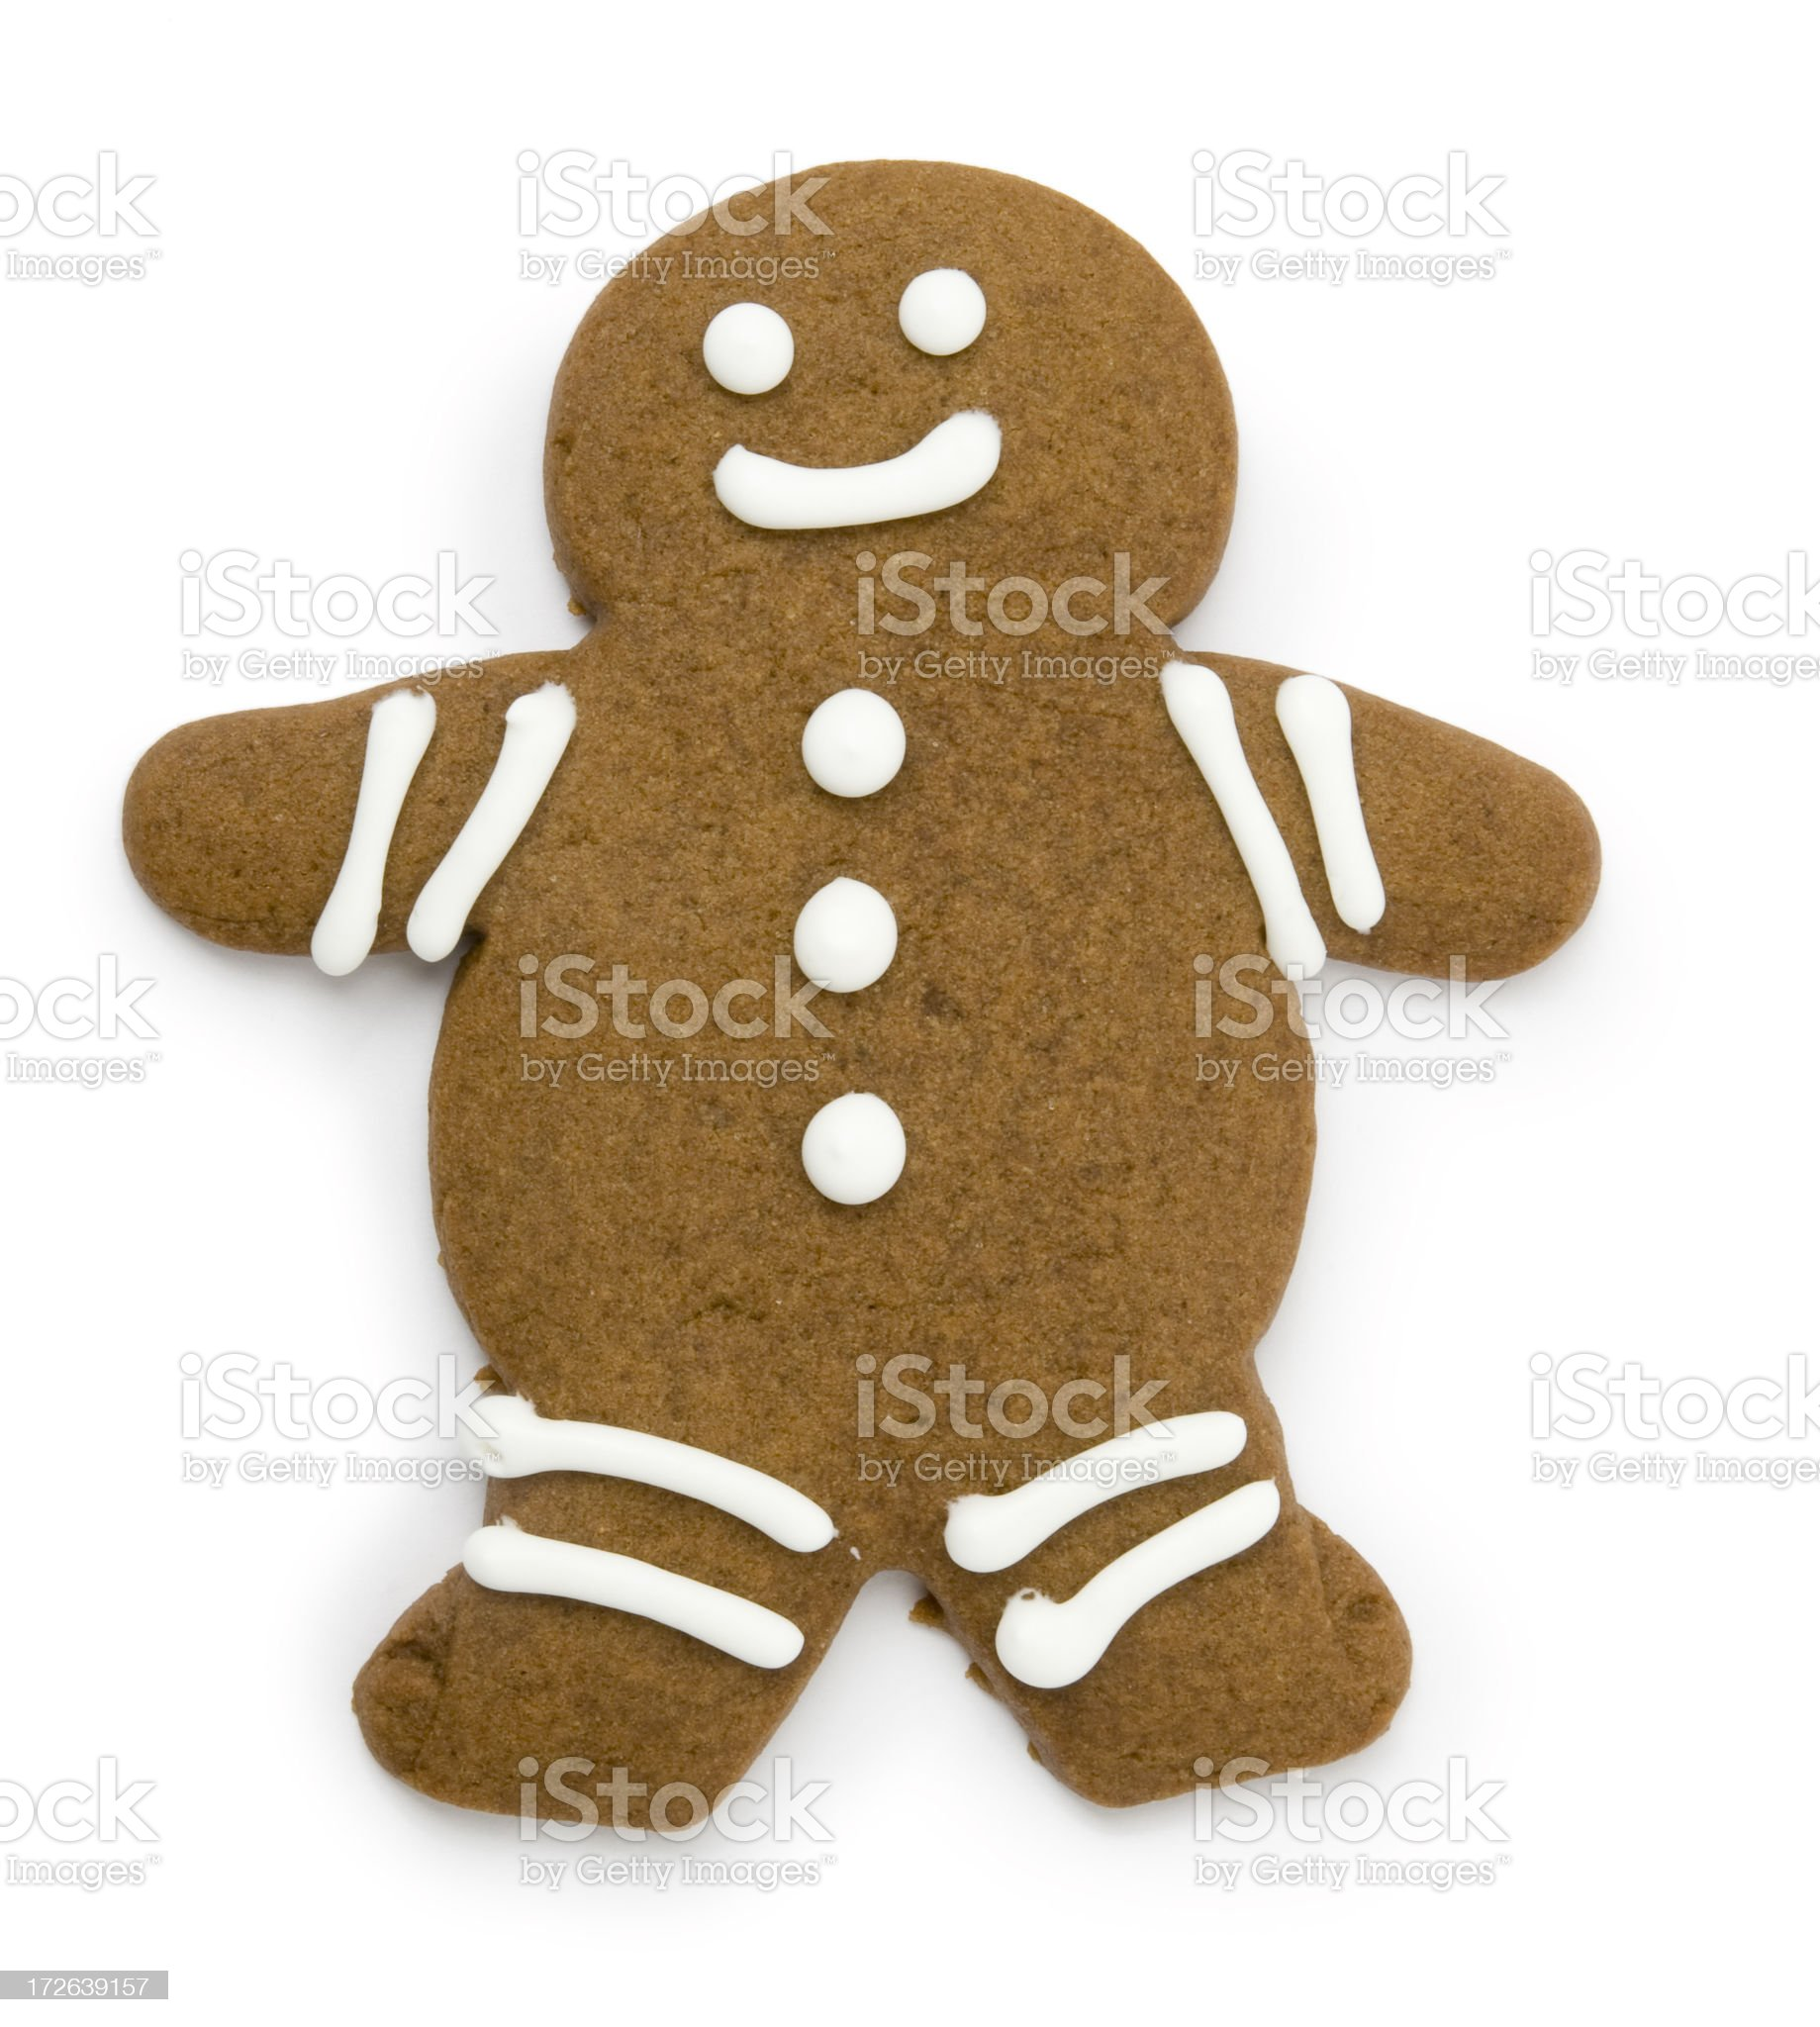 Gingerbread man with clipping path royalty-free stock photo